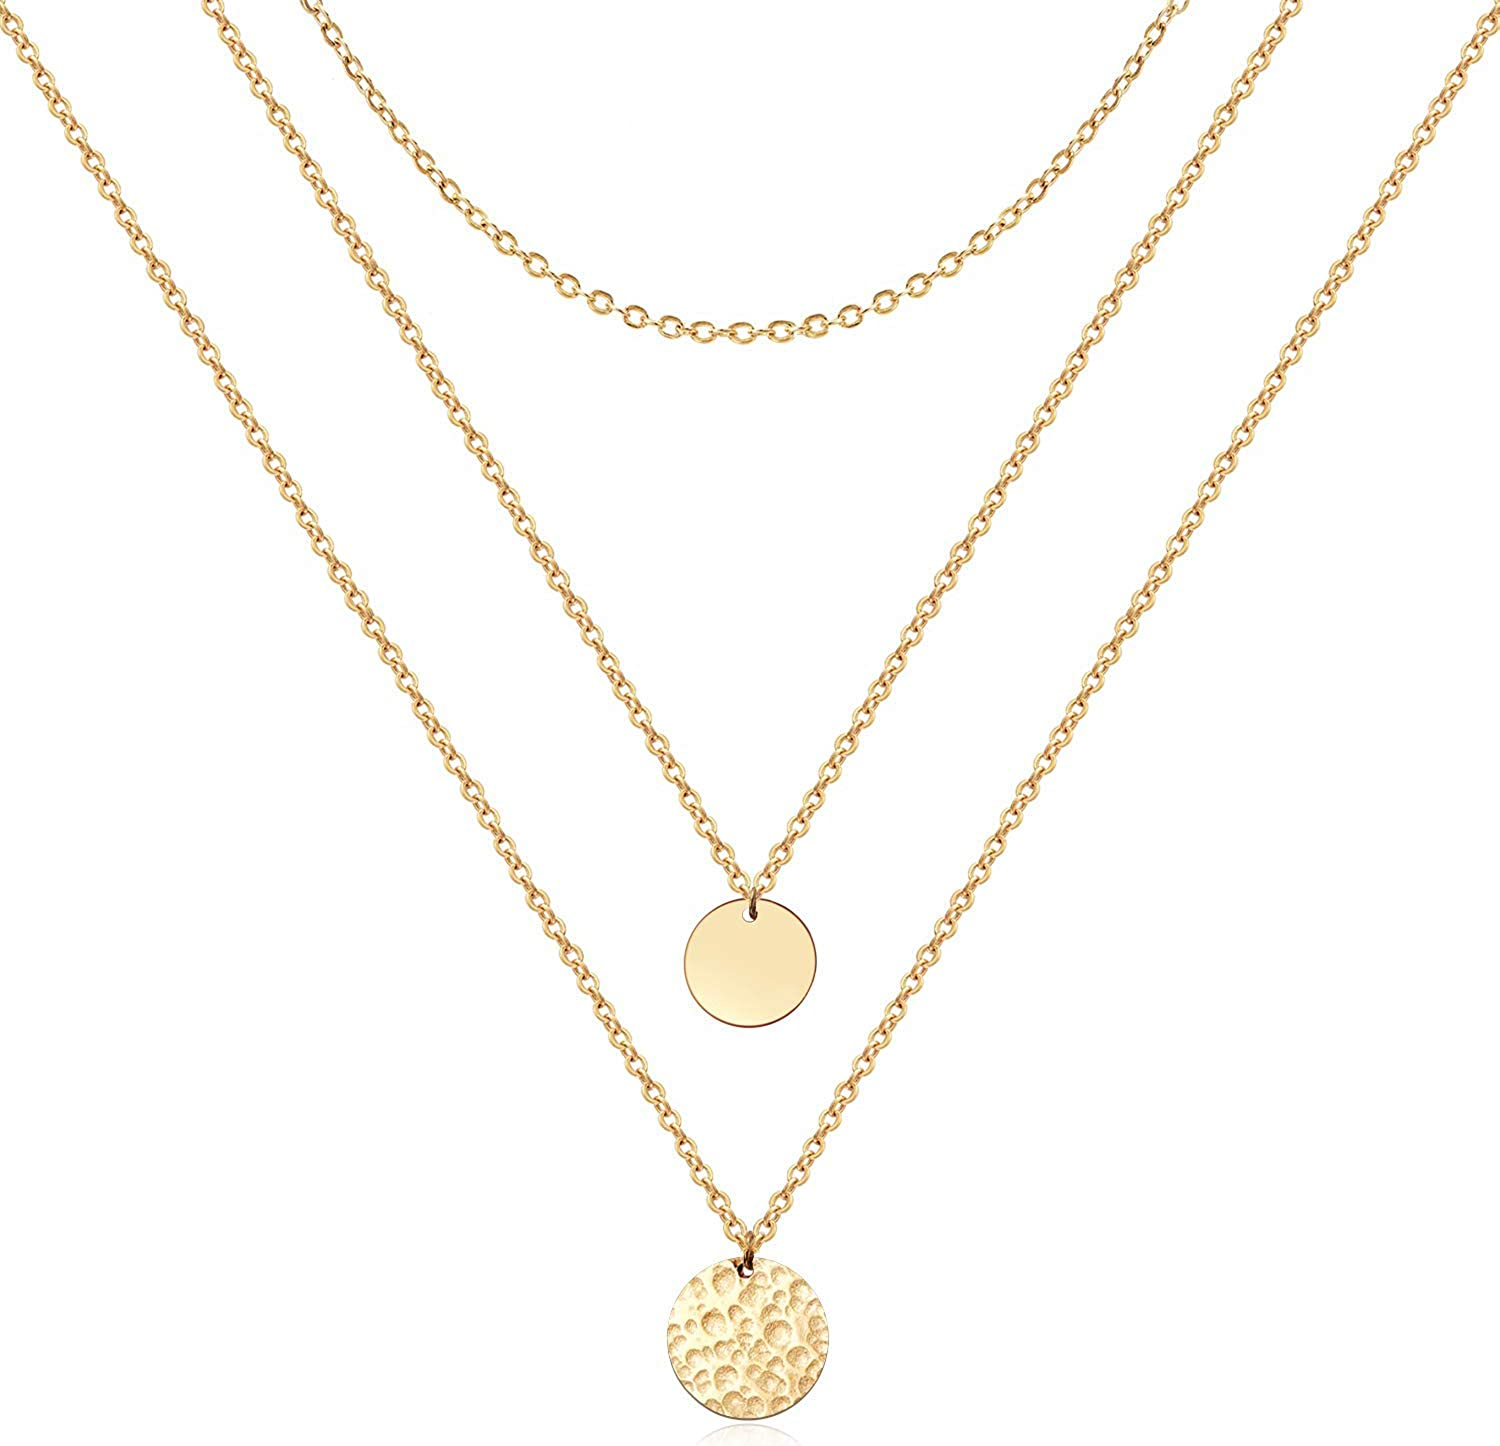 Forevereally Dainty Disc Chokers Necklace Layered Circle Necklace Bar Y Pendant Necklace 14K Real Gold Plated Necklace for Women